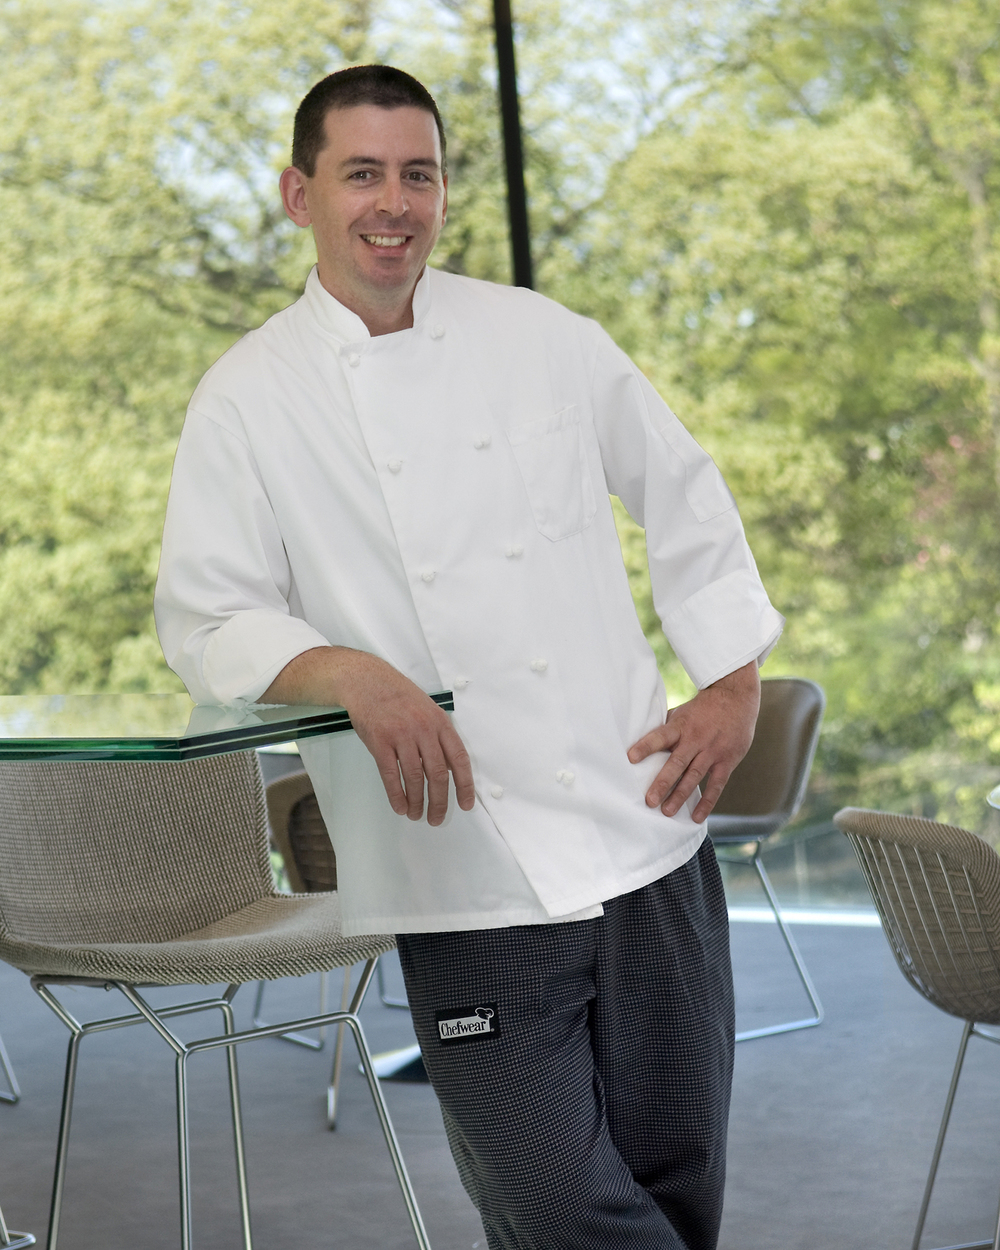 Chef Greg Haley